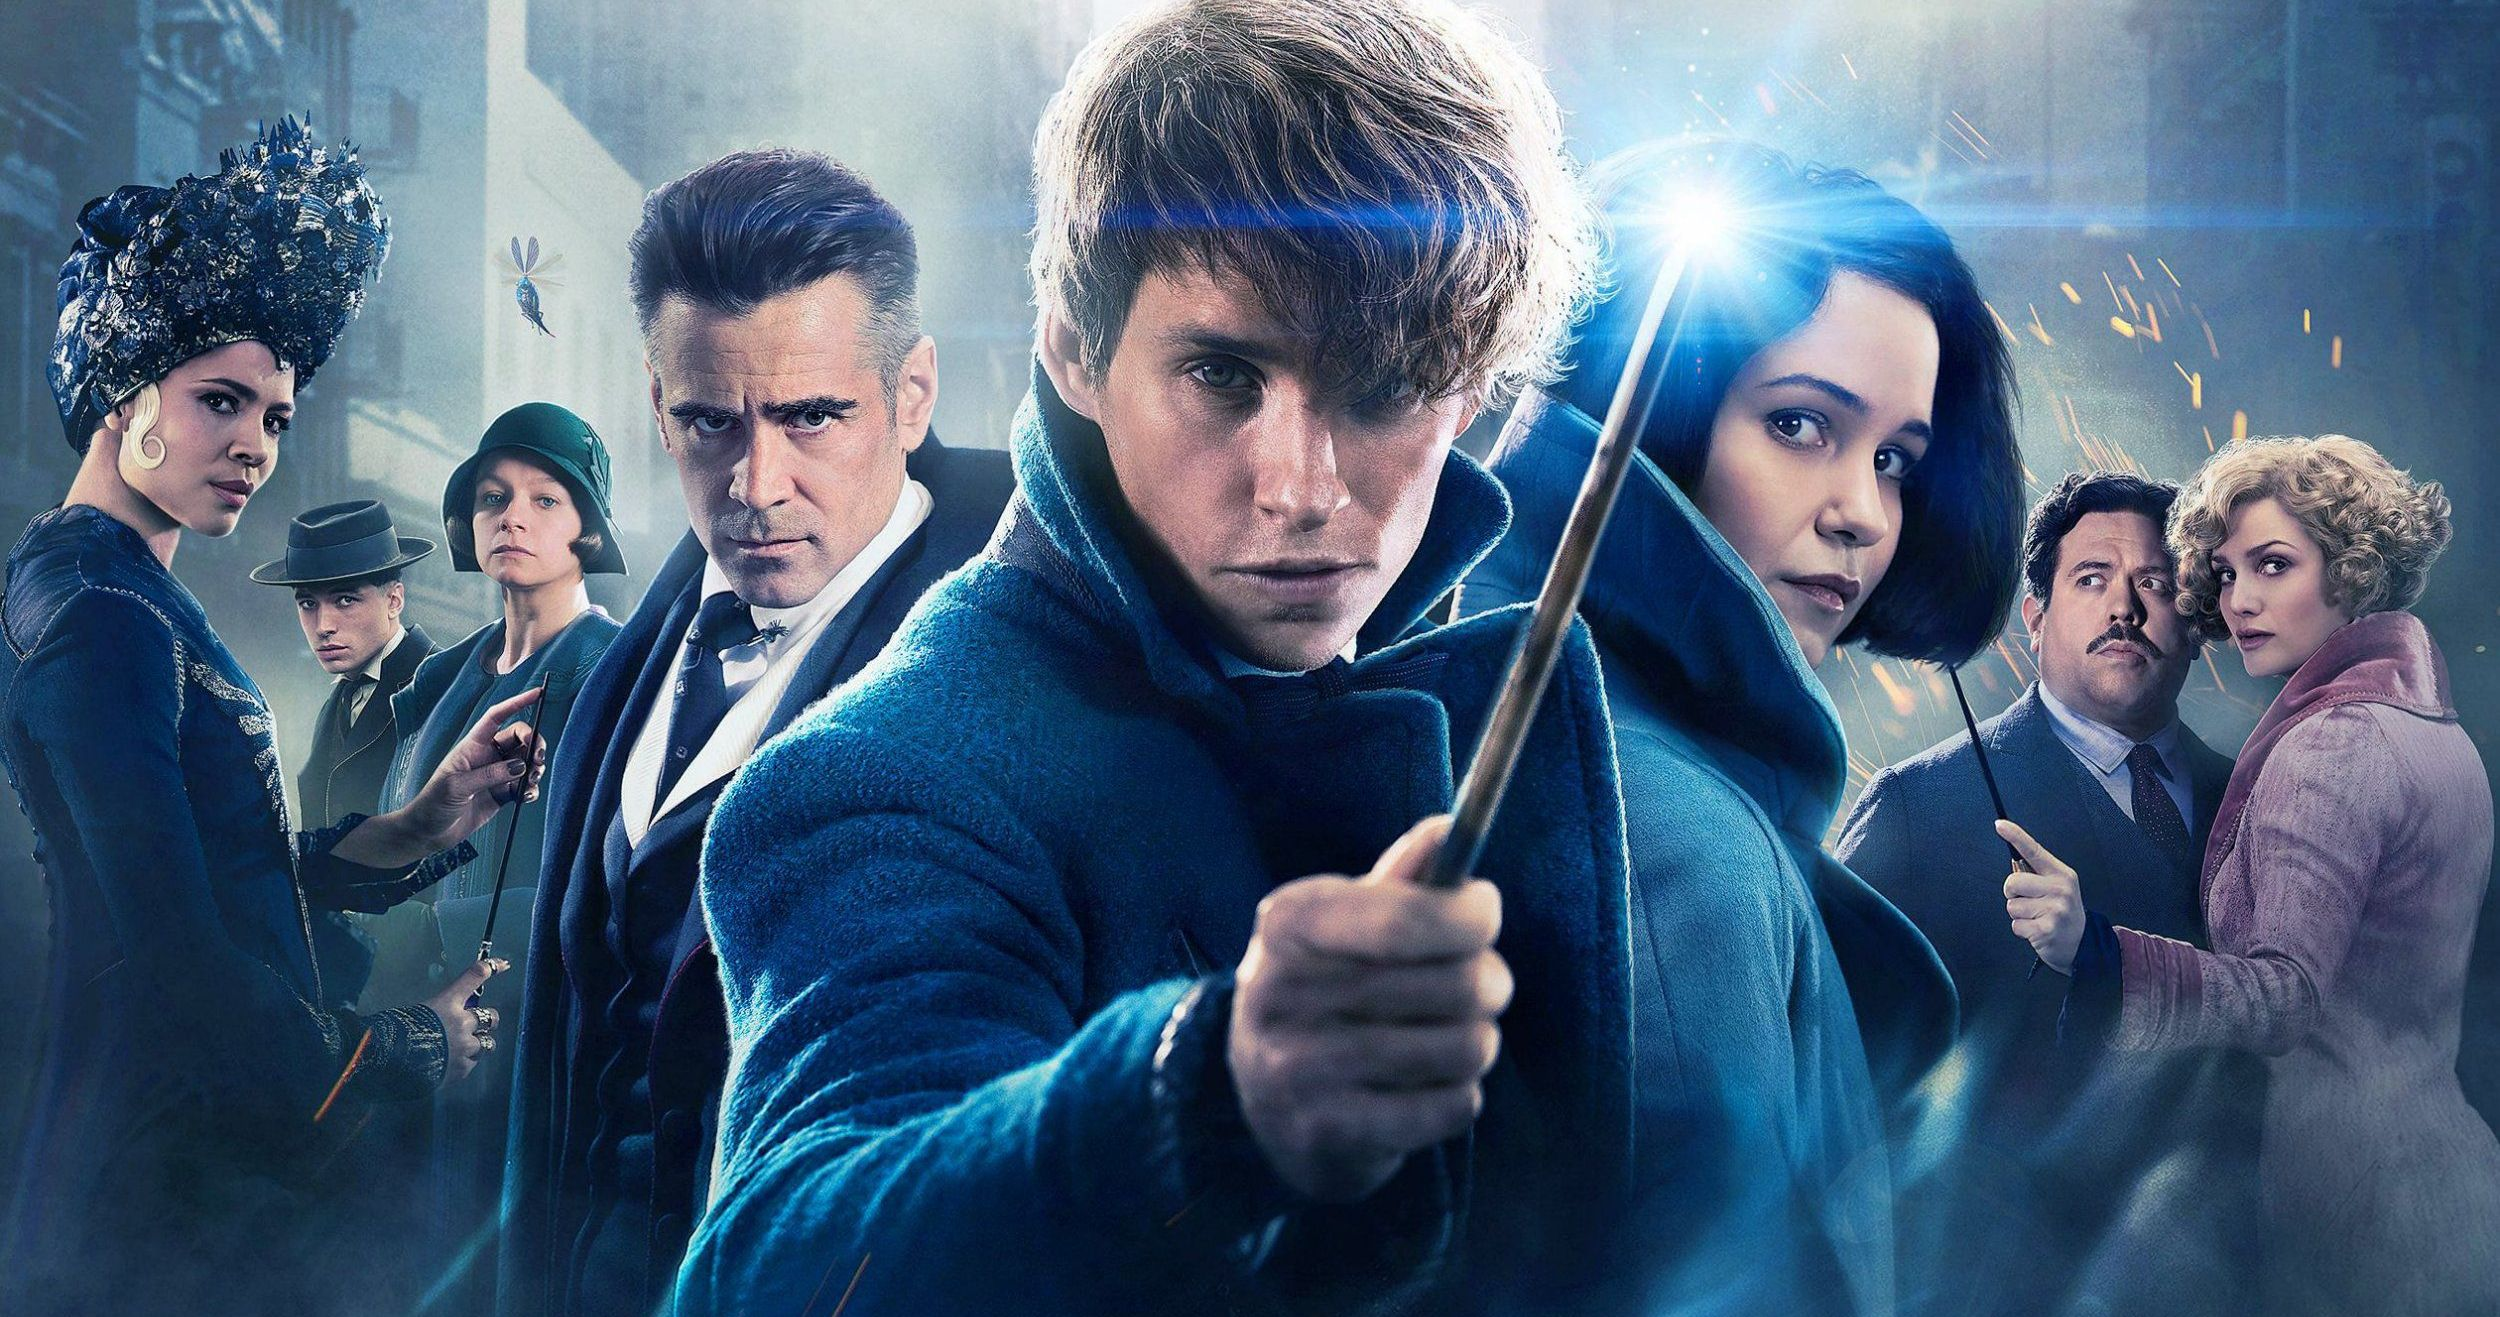 You're Not A Real Harry Potter Fan If You Can't Name At Least Half Of These Fantastic Beasts Characters!